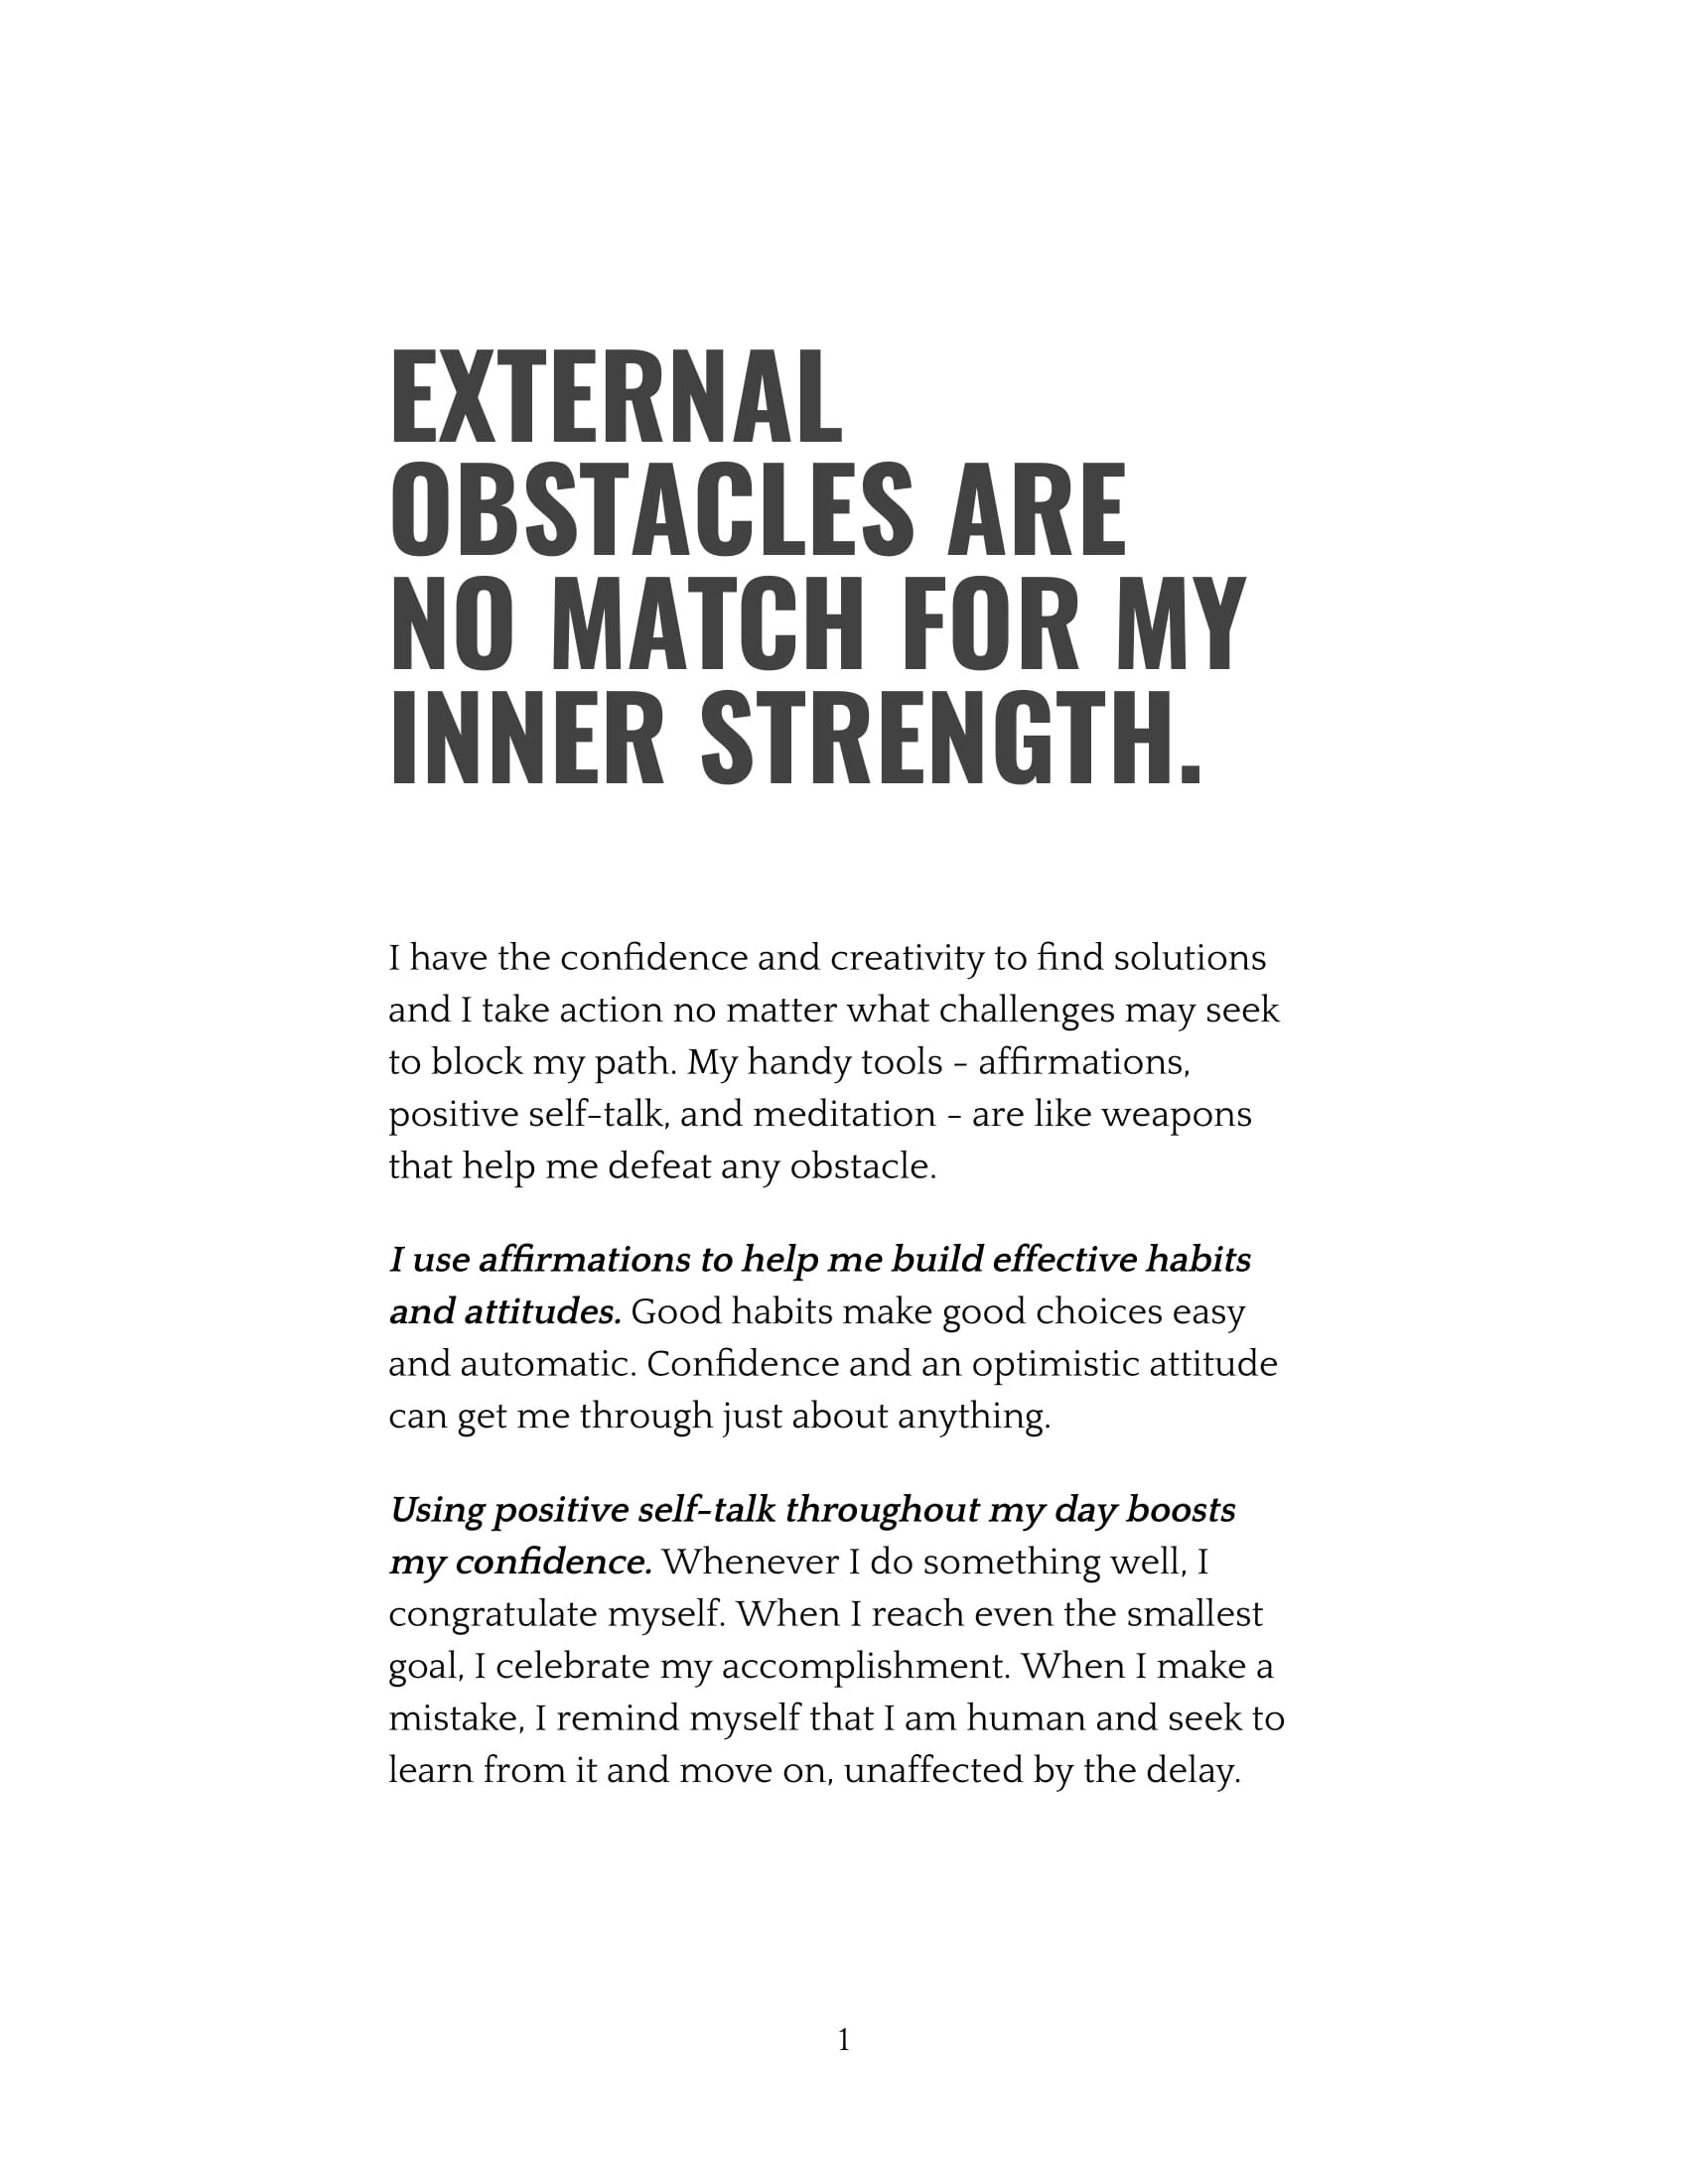 External Obstacles Are No Match For My Inner Strength-1.jpg